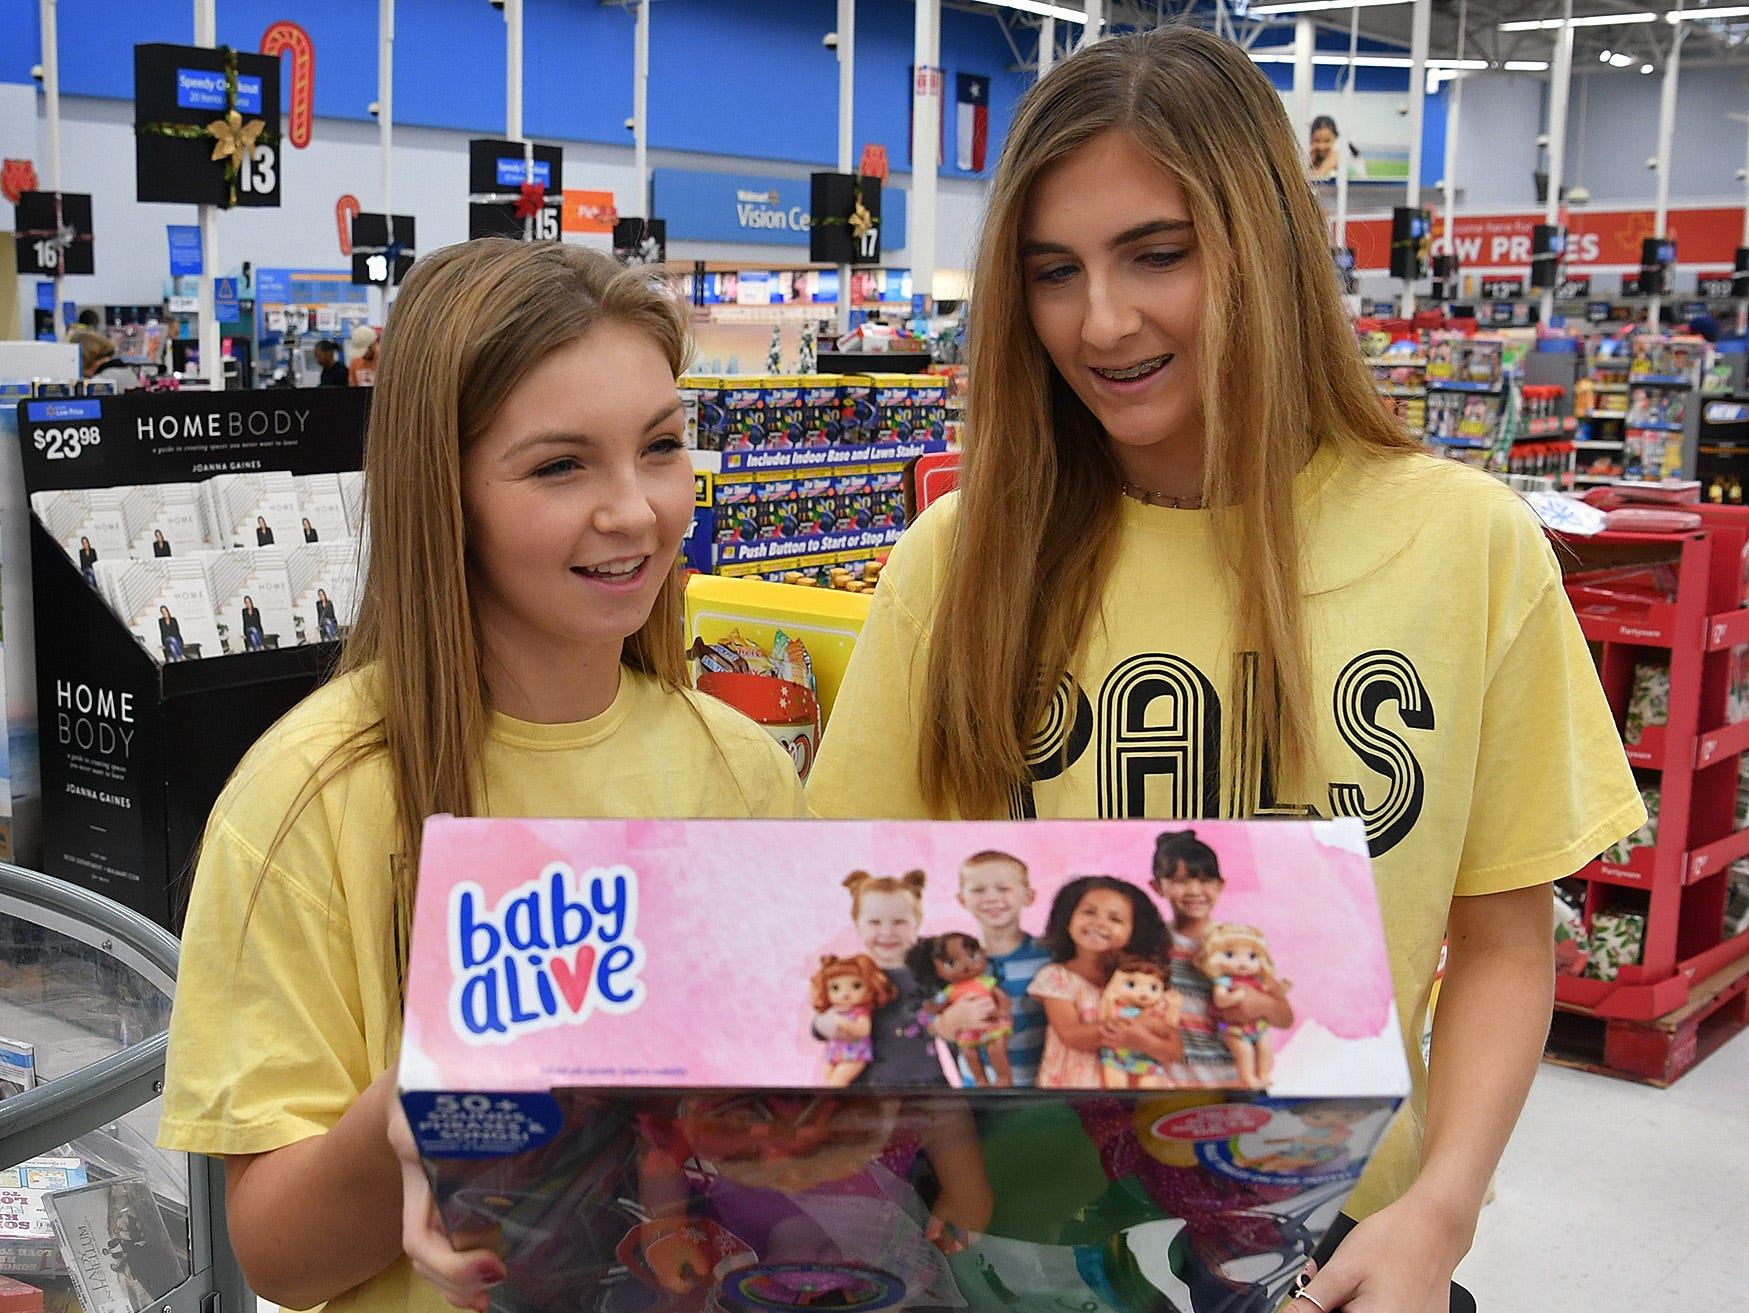 Burkburnett High School PALS members Tayler Tournay, left, and Lauren Johnston look over some of the gifts they picked for children living at the Childrens Aid Society Childrens Home during a shopping trip with the Wichita Falls Police Officers Association Monday.